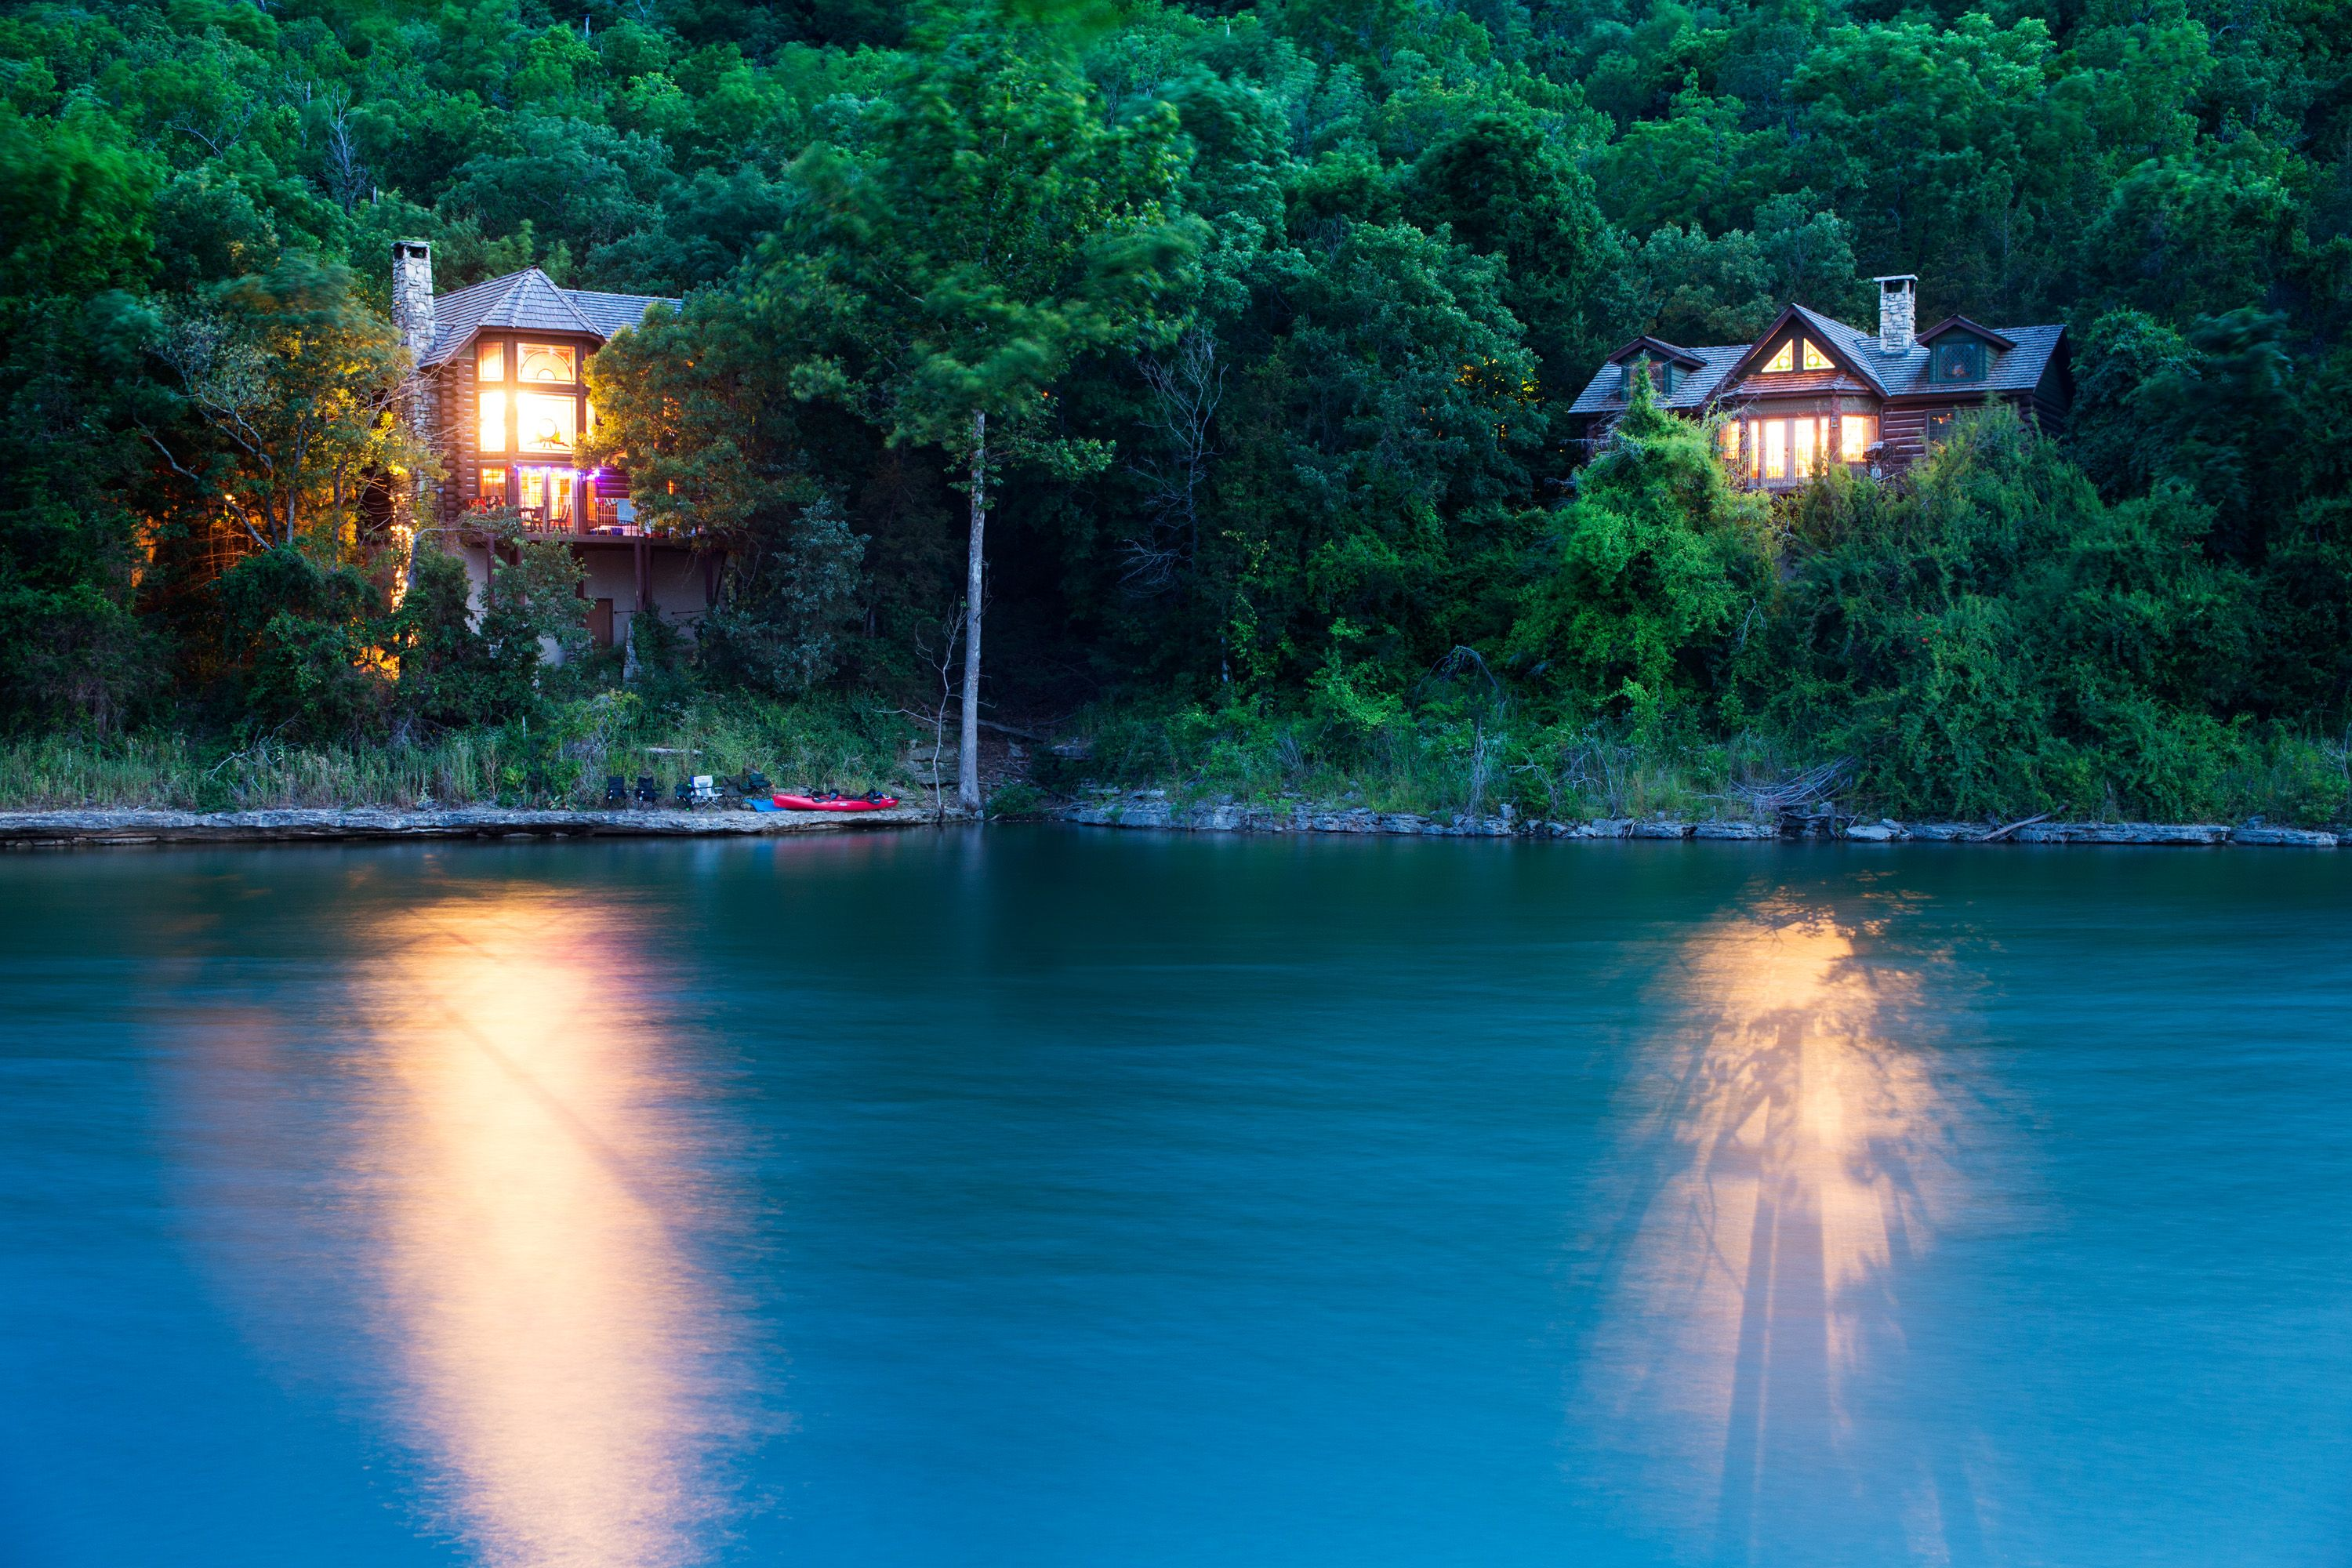 Log cabin on a lake royalty free stock photography image 7866317 - Lakeview Cabins At Big Cedar Http Www Big Cedar Com Page Private Log Cabins Aspx Cabin Fever Pinterest Cabin